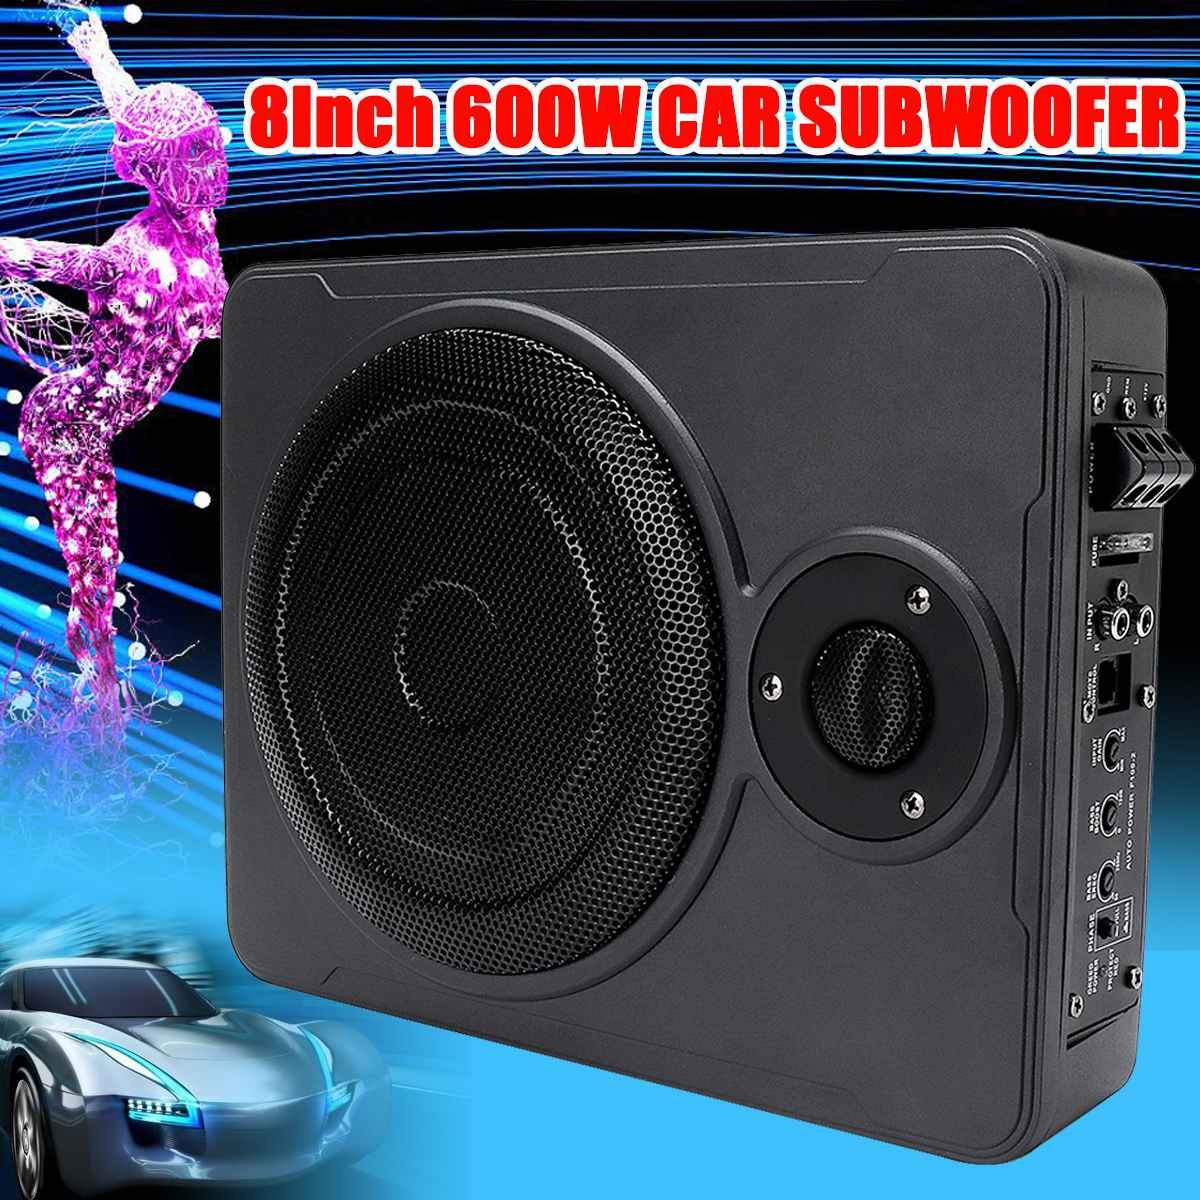 8 Inch 600W Car Home Subwoofer Under Seat SubStereo Subwoofe